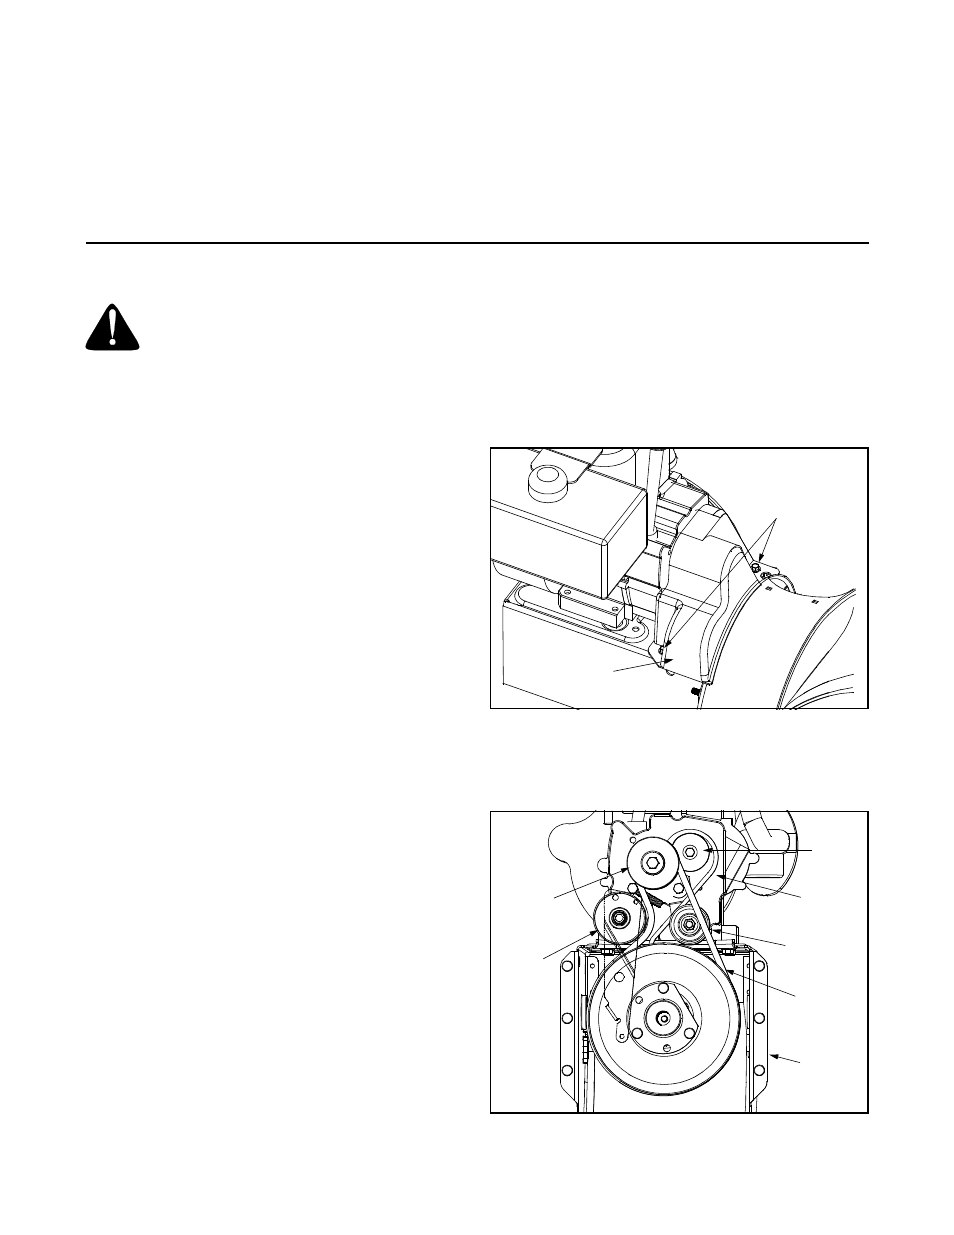 know your model Array - engine augers shave plate and skid shoes mtd e740f  user manual rh manualsdir com